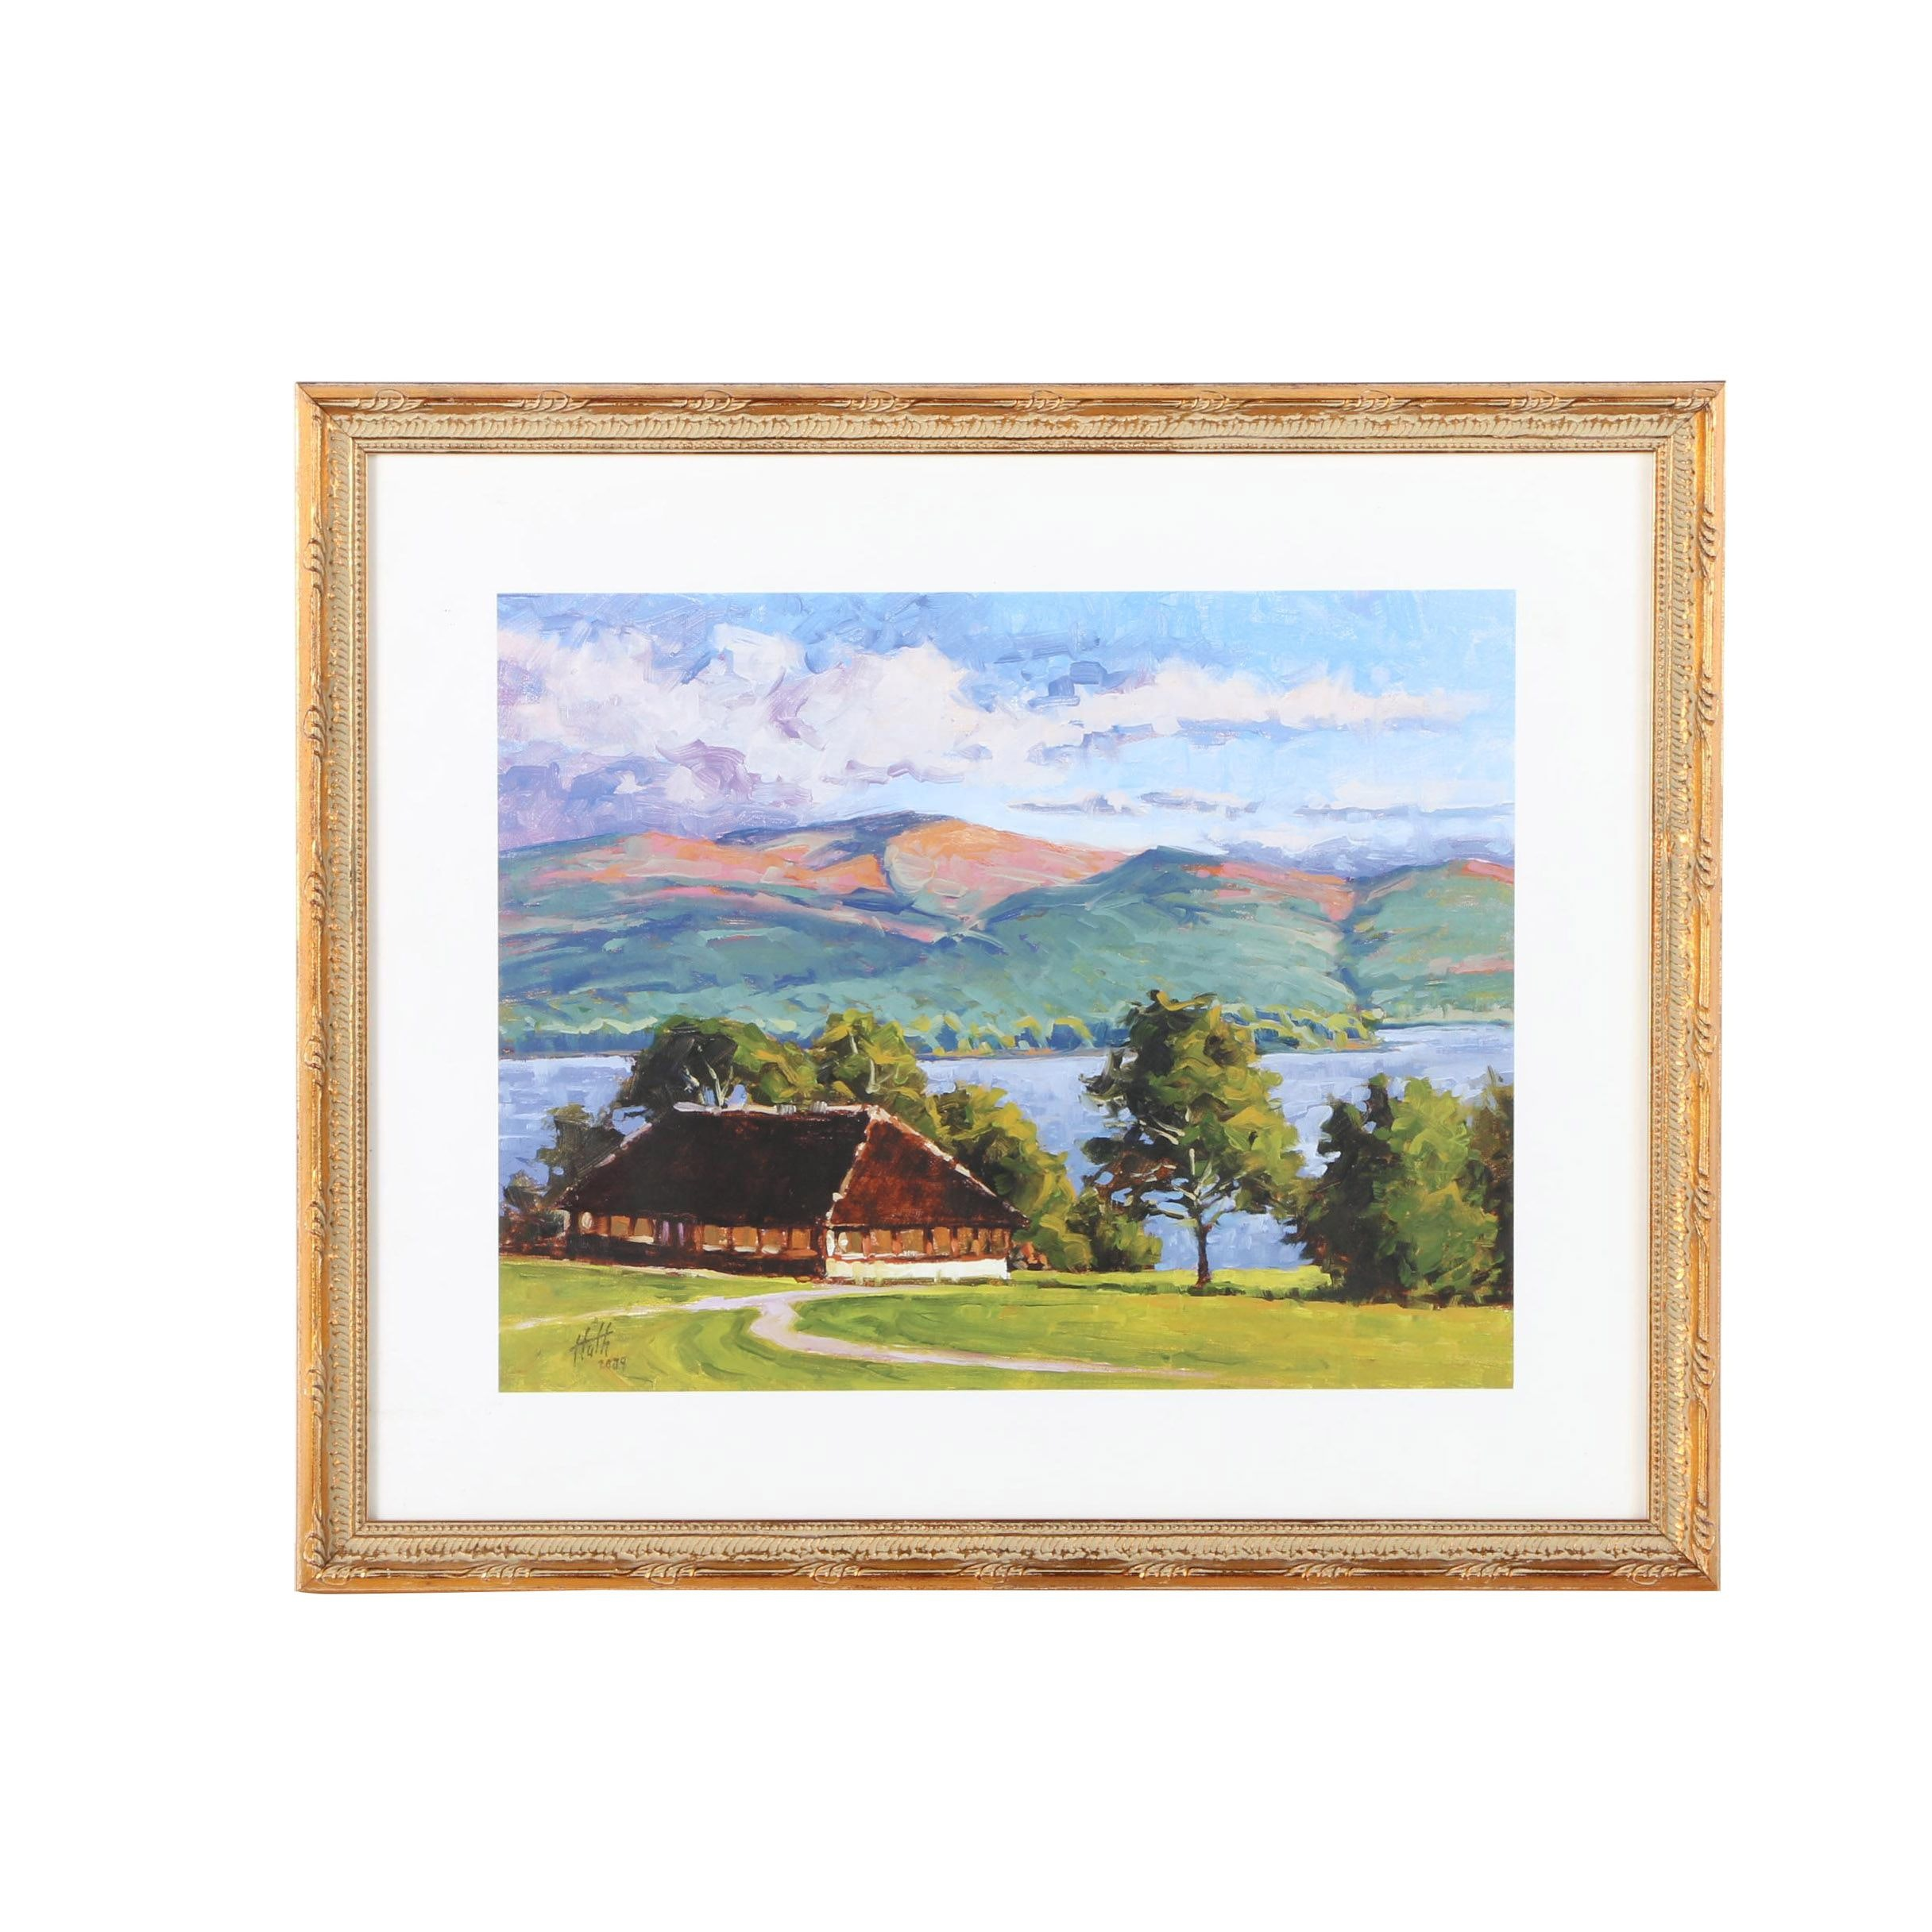 Framed Offset Lithograph After a Landscape Painting Signed Huth